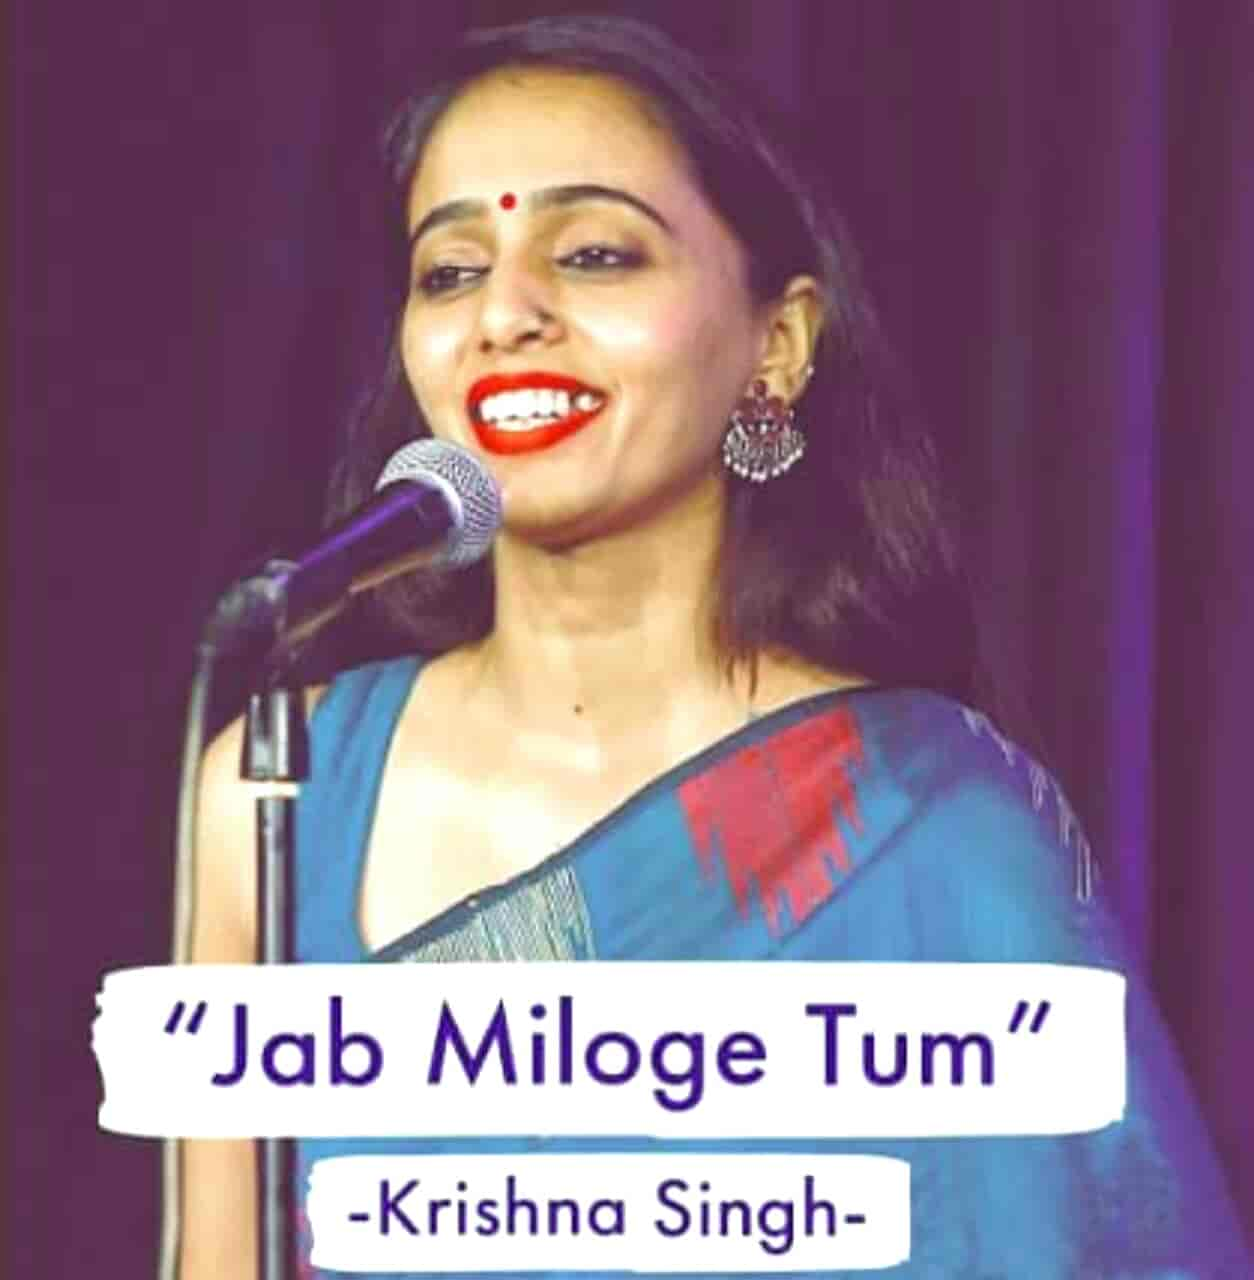 This beautiful poem 'Jab Miloge Tum' which is written and performed by Krishna Singh on the stage of Spill Poetry.